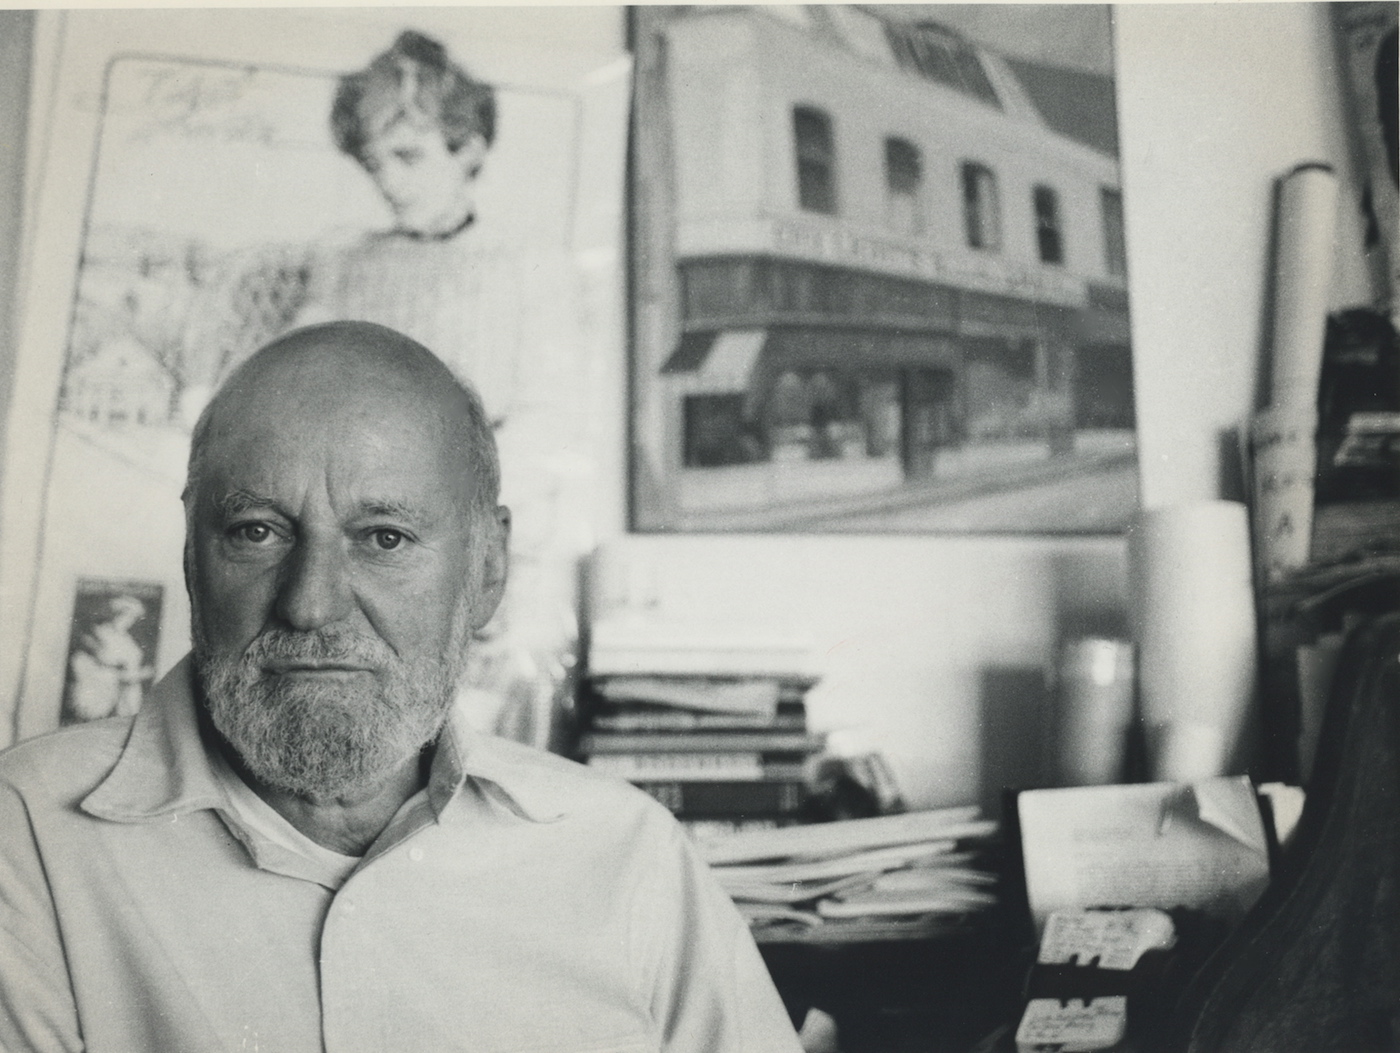 ferlinghetti essay Decay of society depicted by lawrence ferlinghetti, margaret atwood and hunter s thompson - free download as word doc (doc / docx), pdf file (pdf), text file (txt) or read online for free.